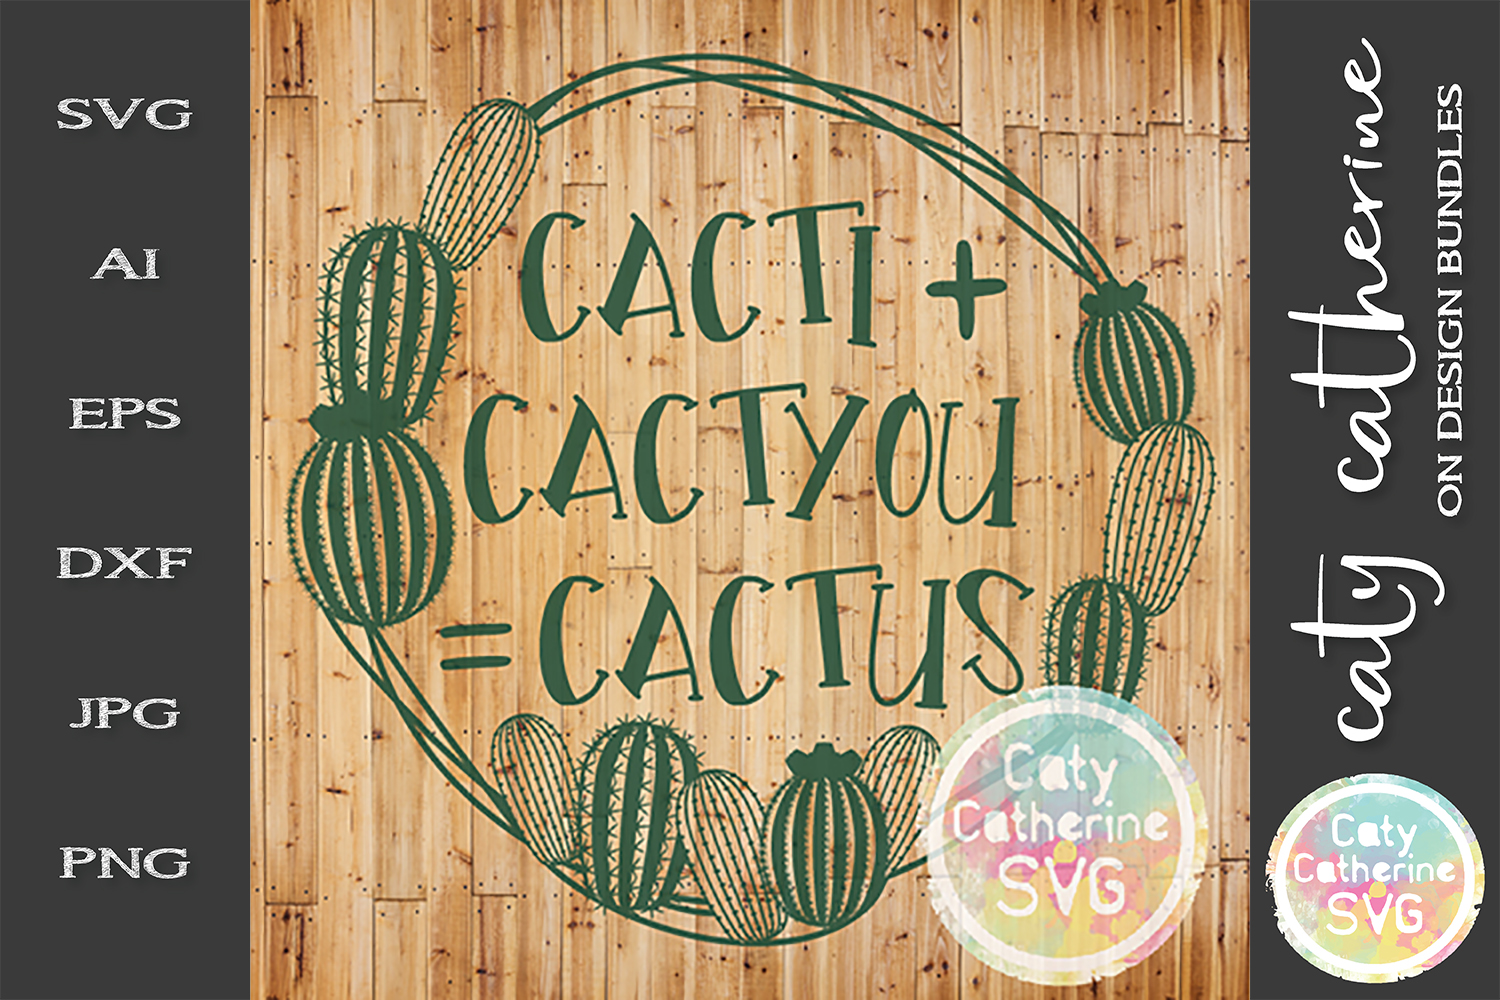 Cacti & Cactyou Equals Cactus SVG Cut File Couple Love SVG example image 1